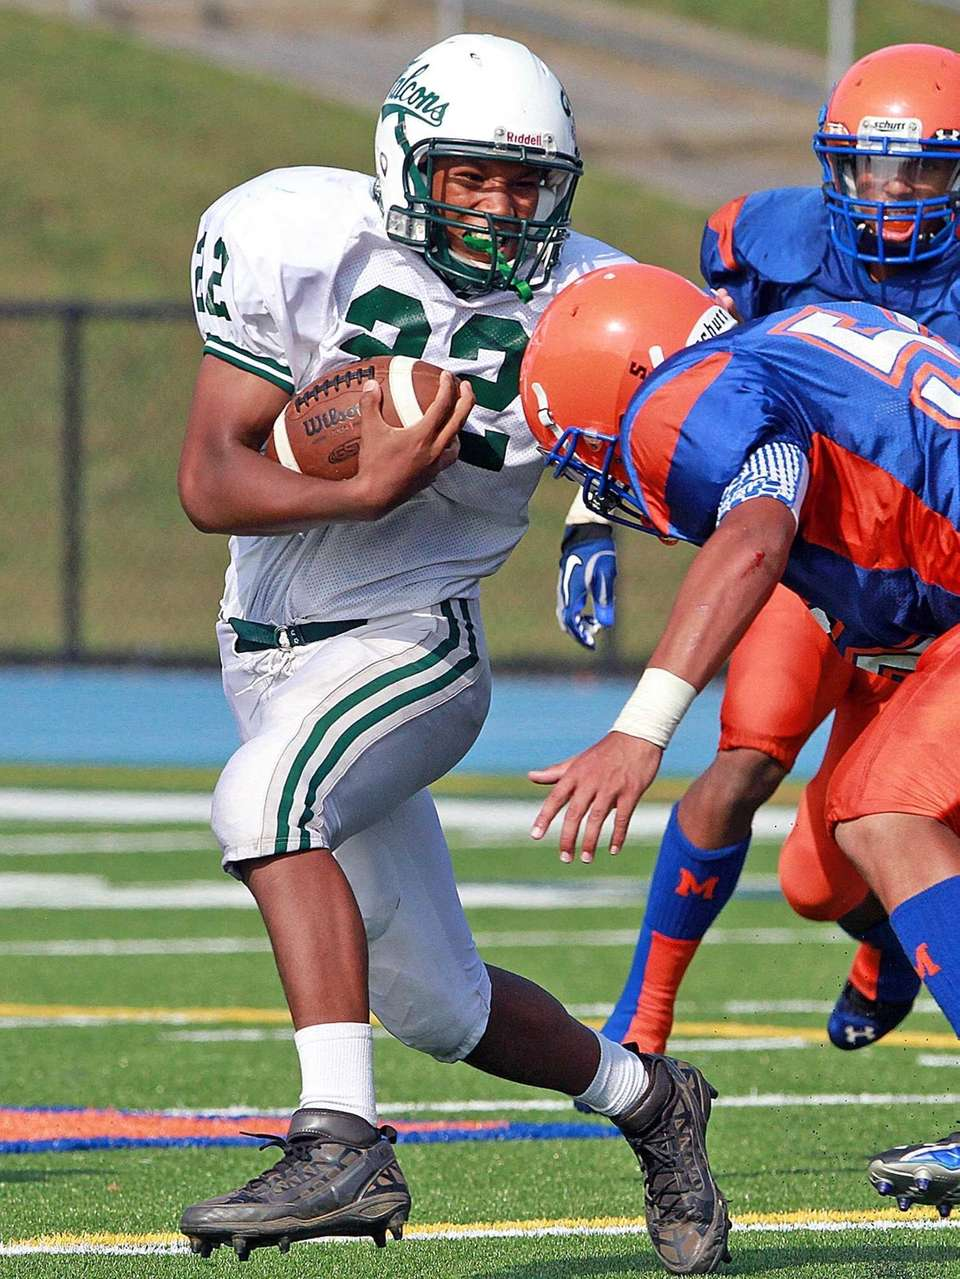 Locust Valley's Yamique Webb looks to cut back